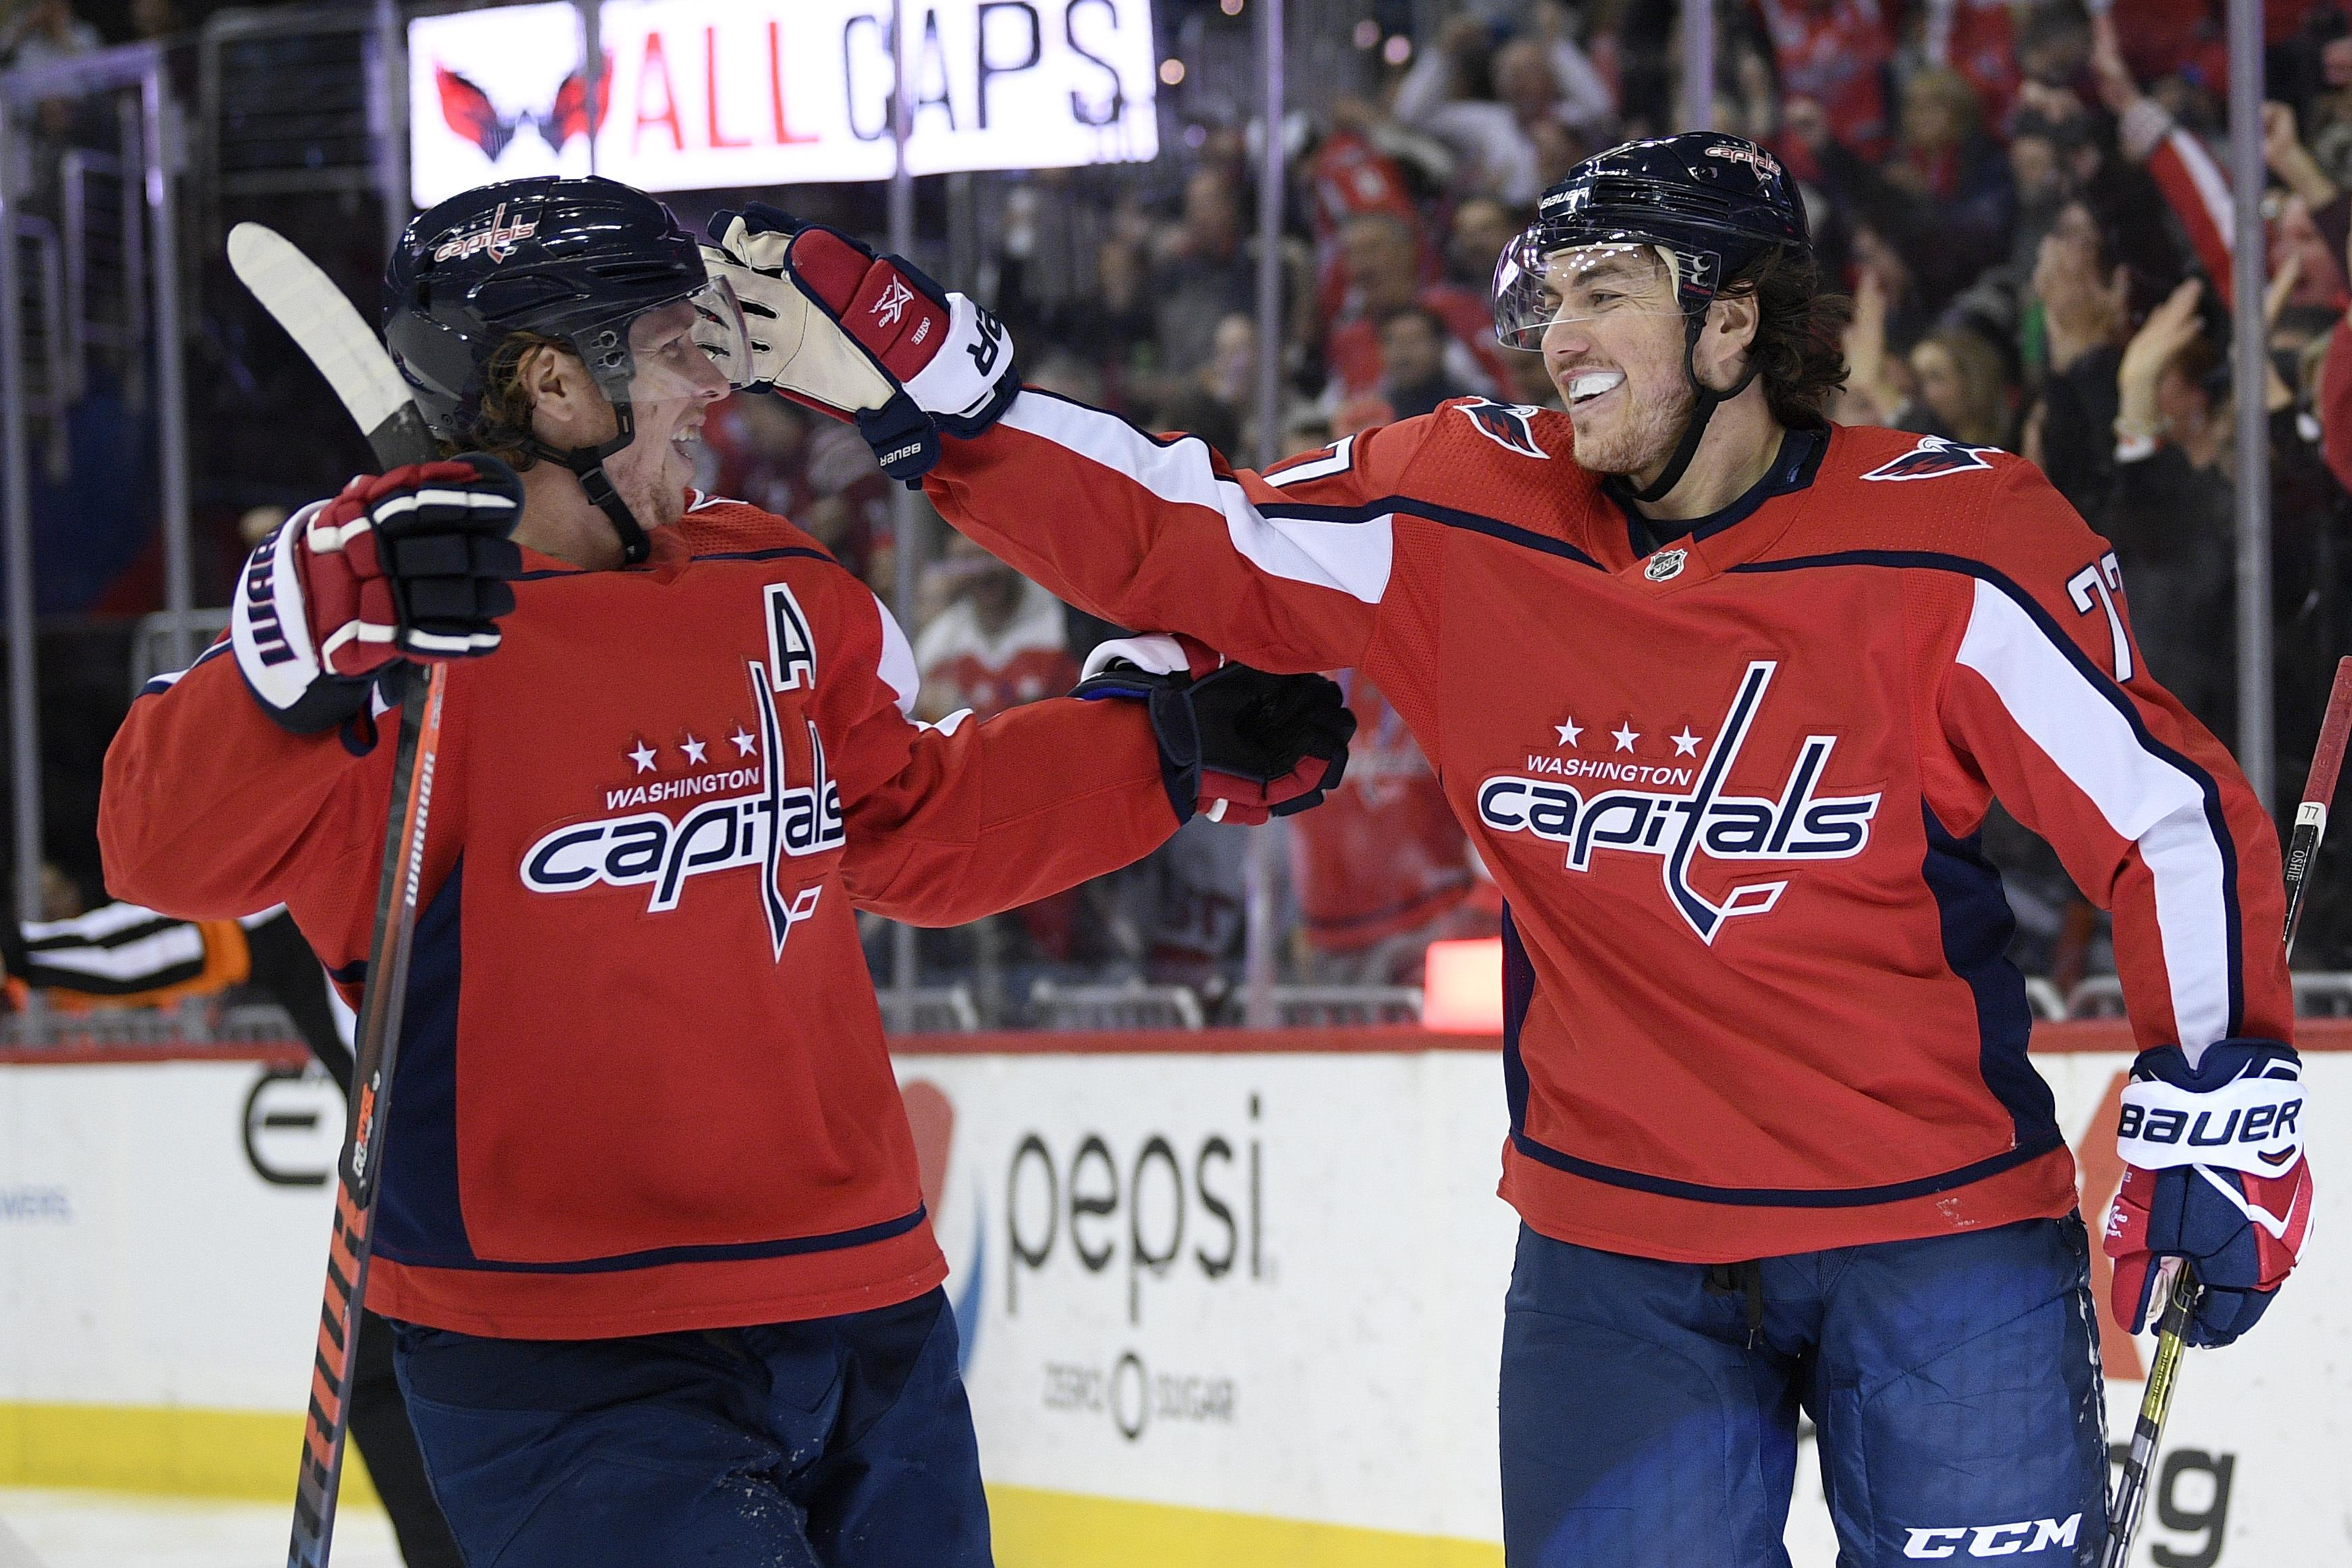 Washington Capitals right wing T.J. Oshie (77) celebrates his goal with  center Nicklas Backstrom bf9517e91